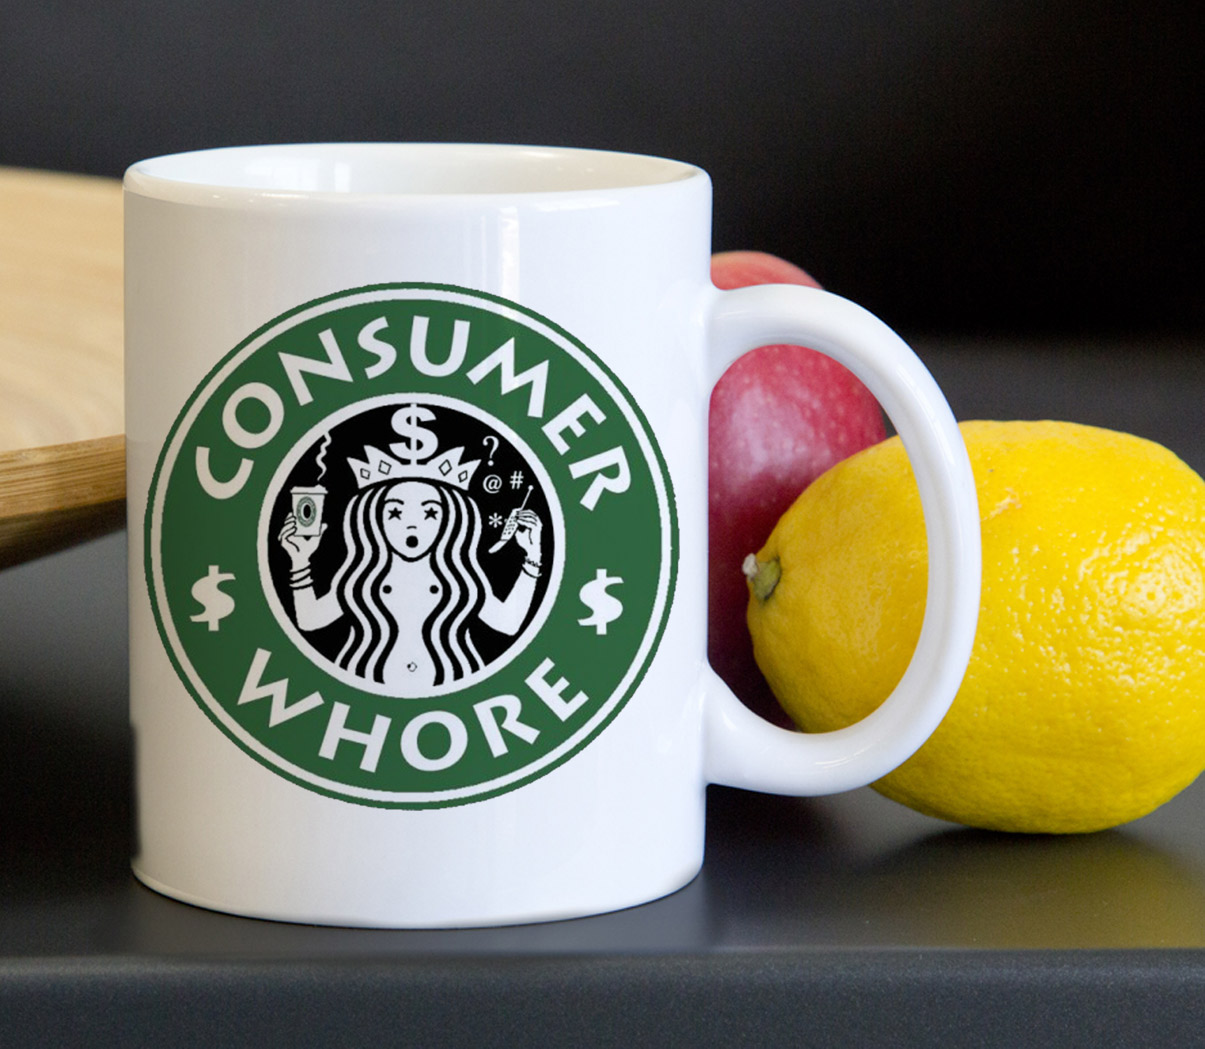 Fascinating Starbucks Consumer Whore Tea Coffee Classic Ceramic Mug Classic Diner Coffee Cups Classic Coffee Cup Design furniture Classic Coffee Cup